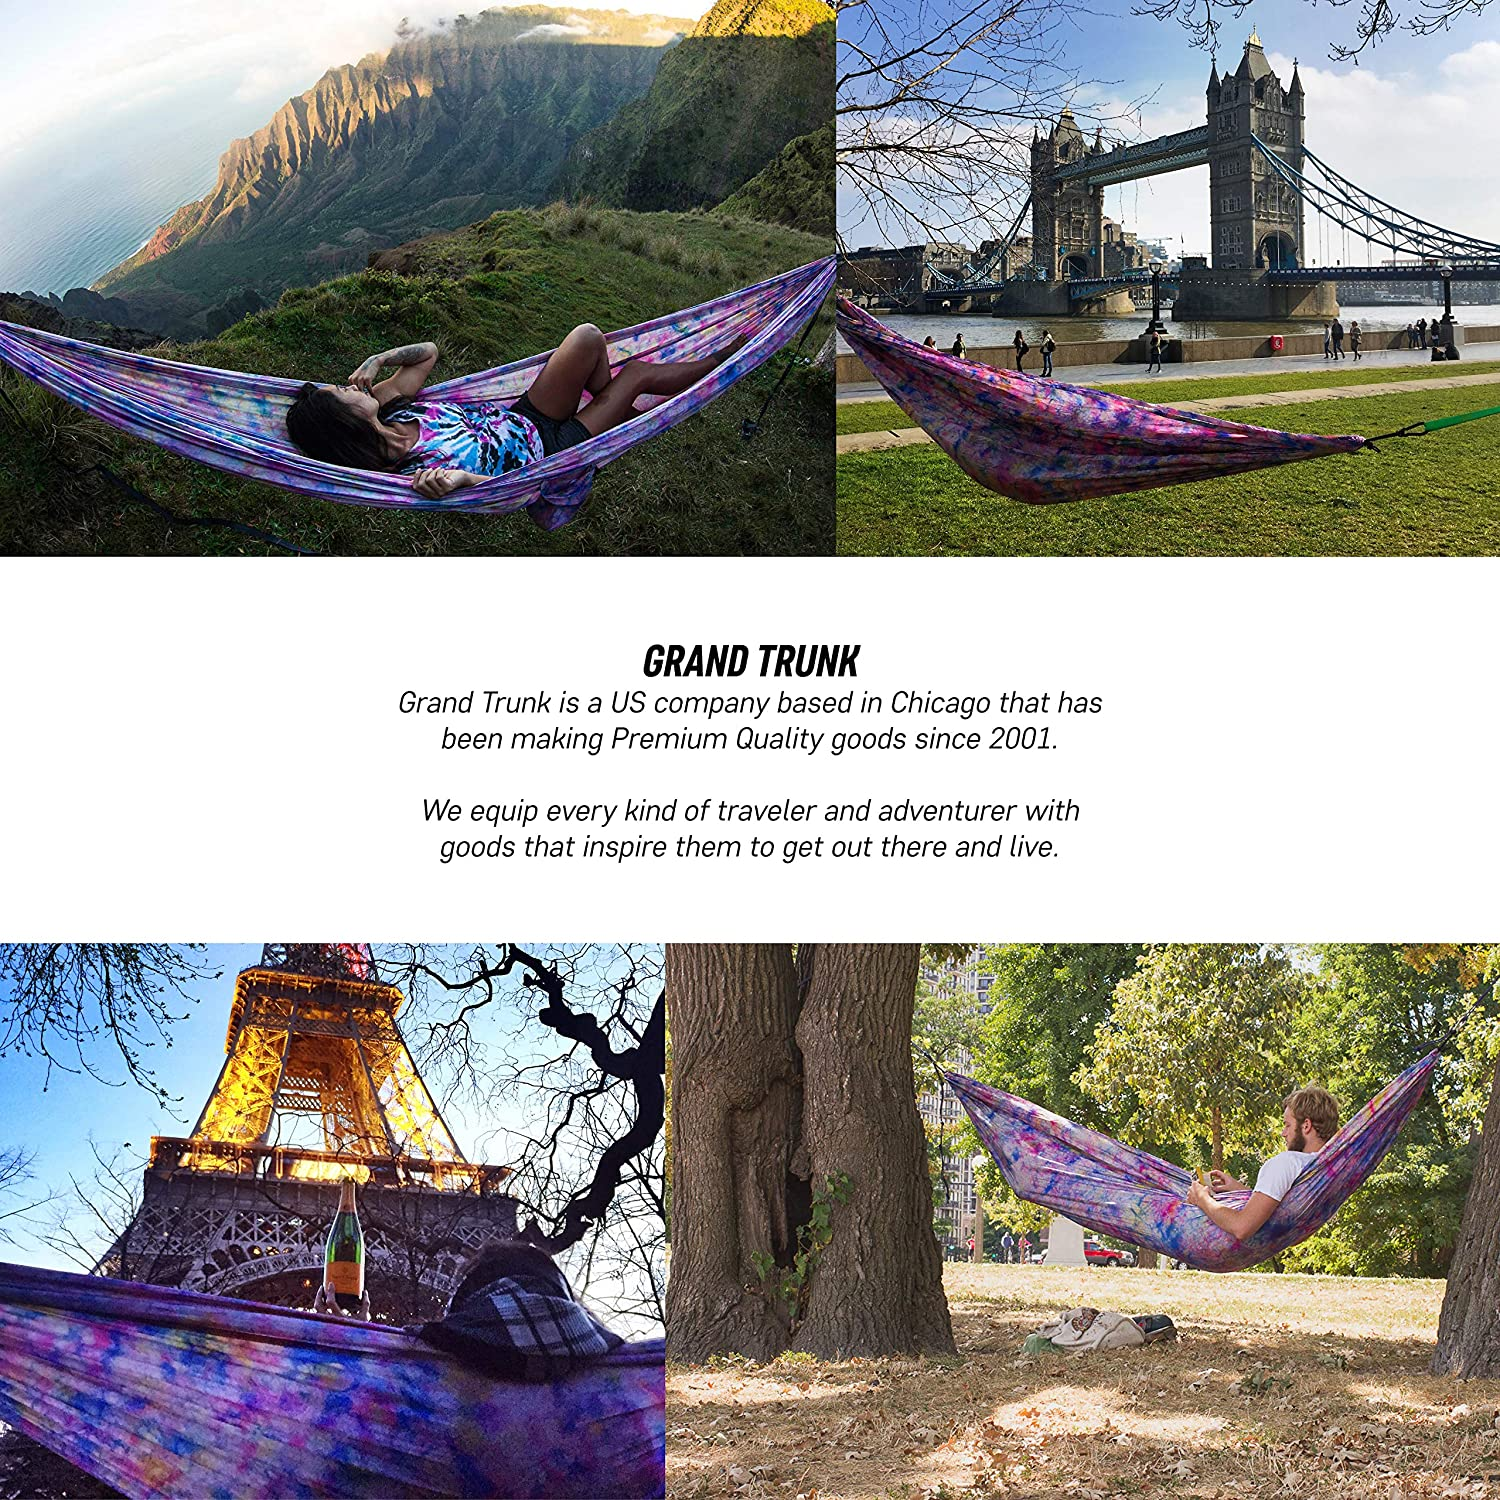 Camping Double Survival Grand Trunk Hammock Indoor Outdoor Backpacking Prints for Every Personality Parachute Nylon Tree Hanging Kit Included Portable Travel